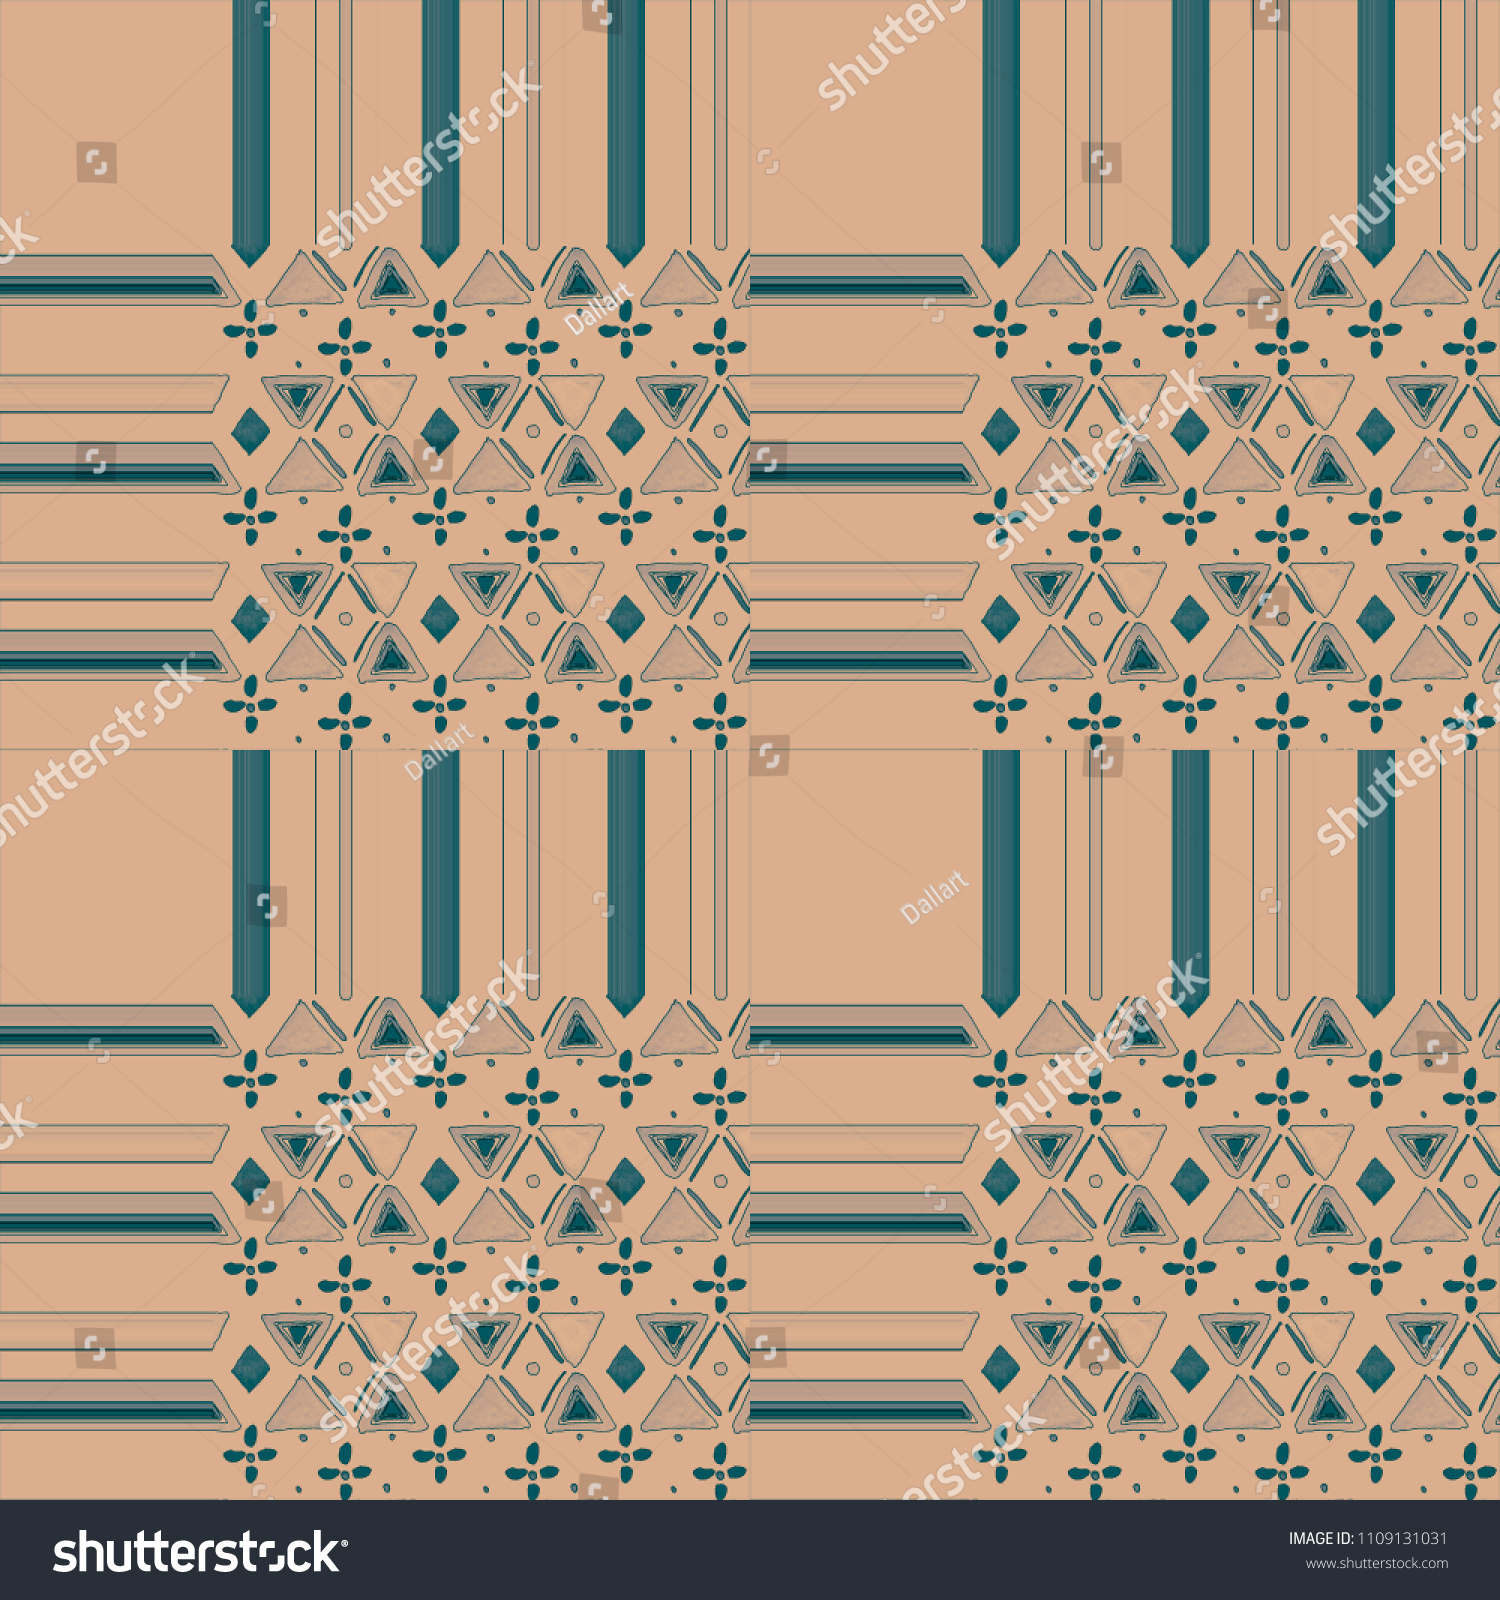 Tiles Background With Stripes And Watercolor Triangles, Lines, Dots Geometric